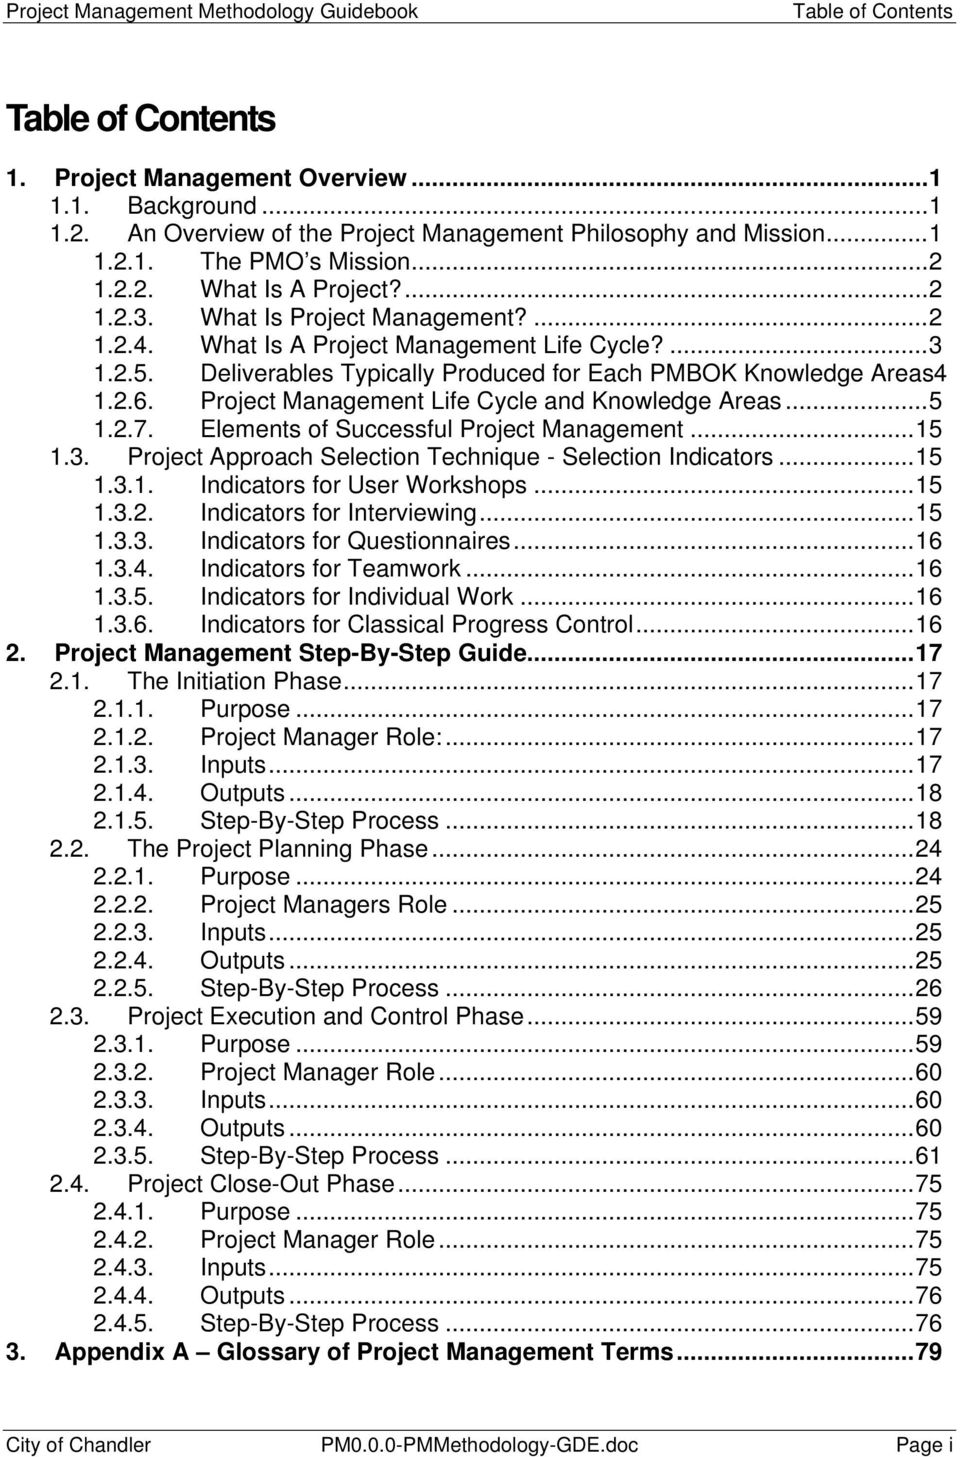 Project Management Life Cycle and Knowledge Areas...5 1.2.7. Elements of Successful Project Management...15 1.3. Project Approach Selection Technique - Selection Indicators...15 1.3.1. Indicators for User Workshops.